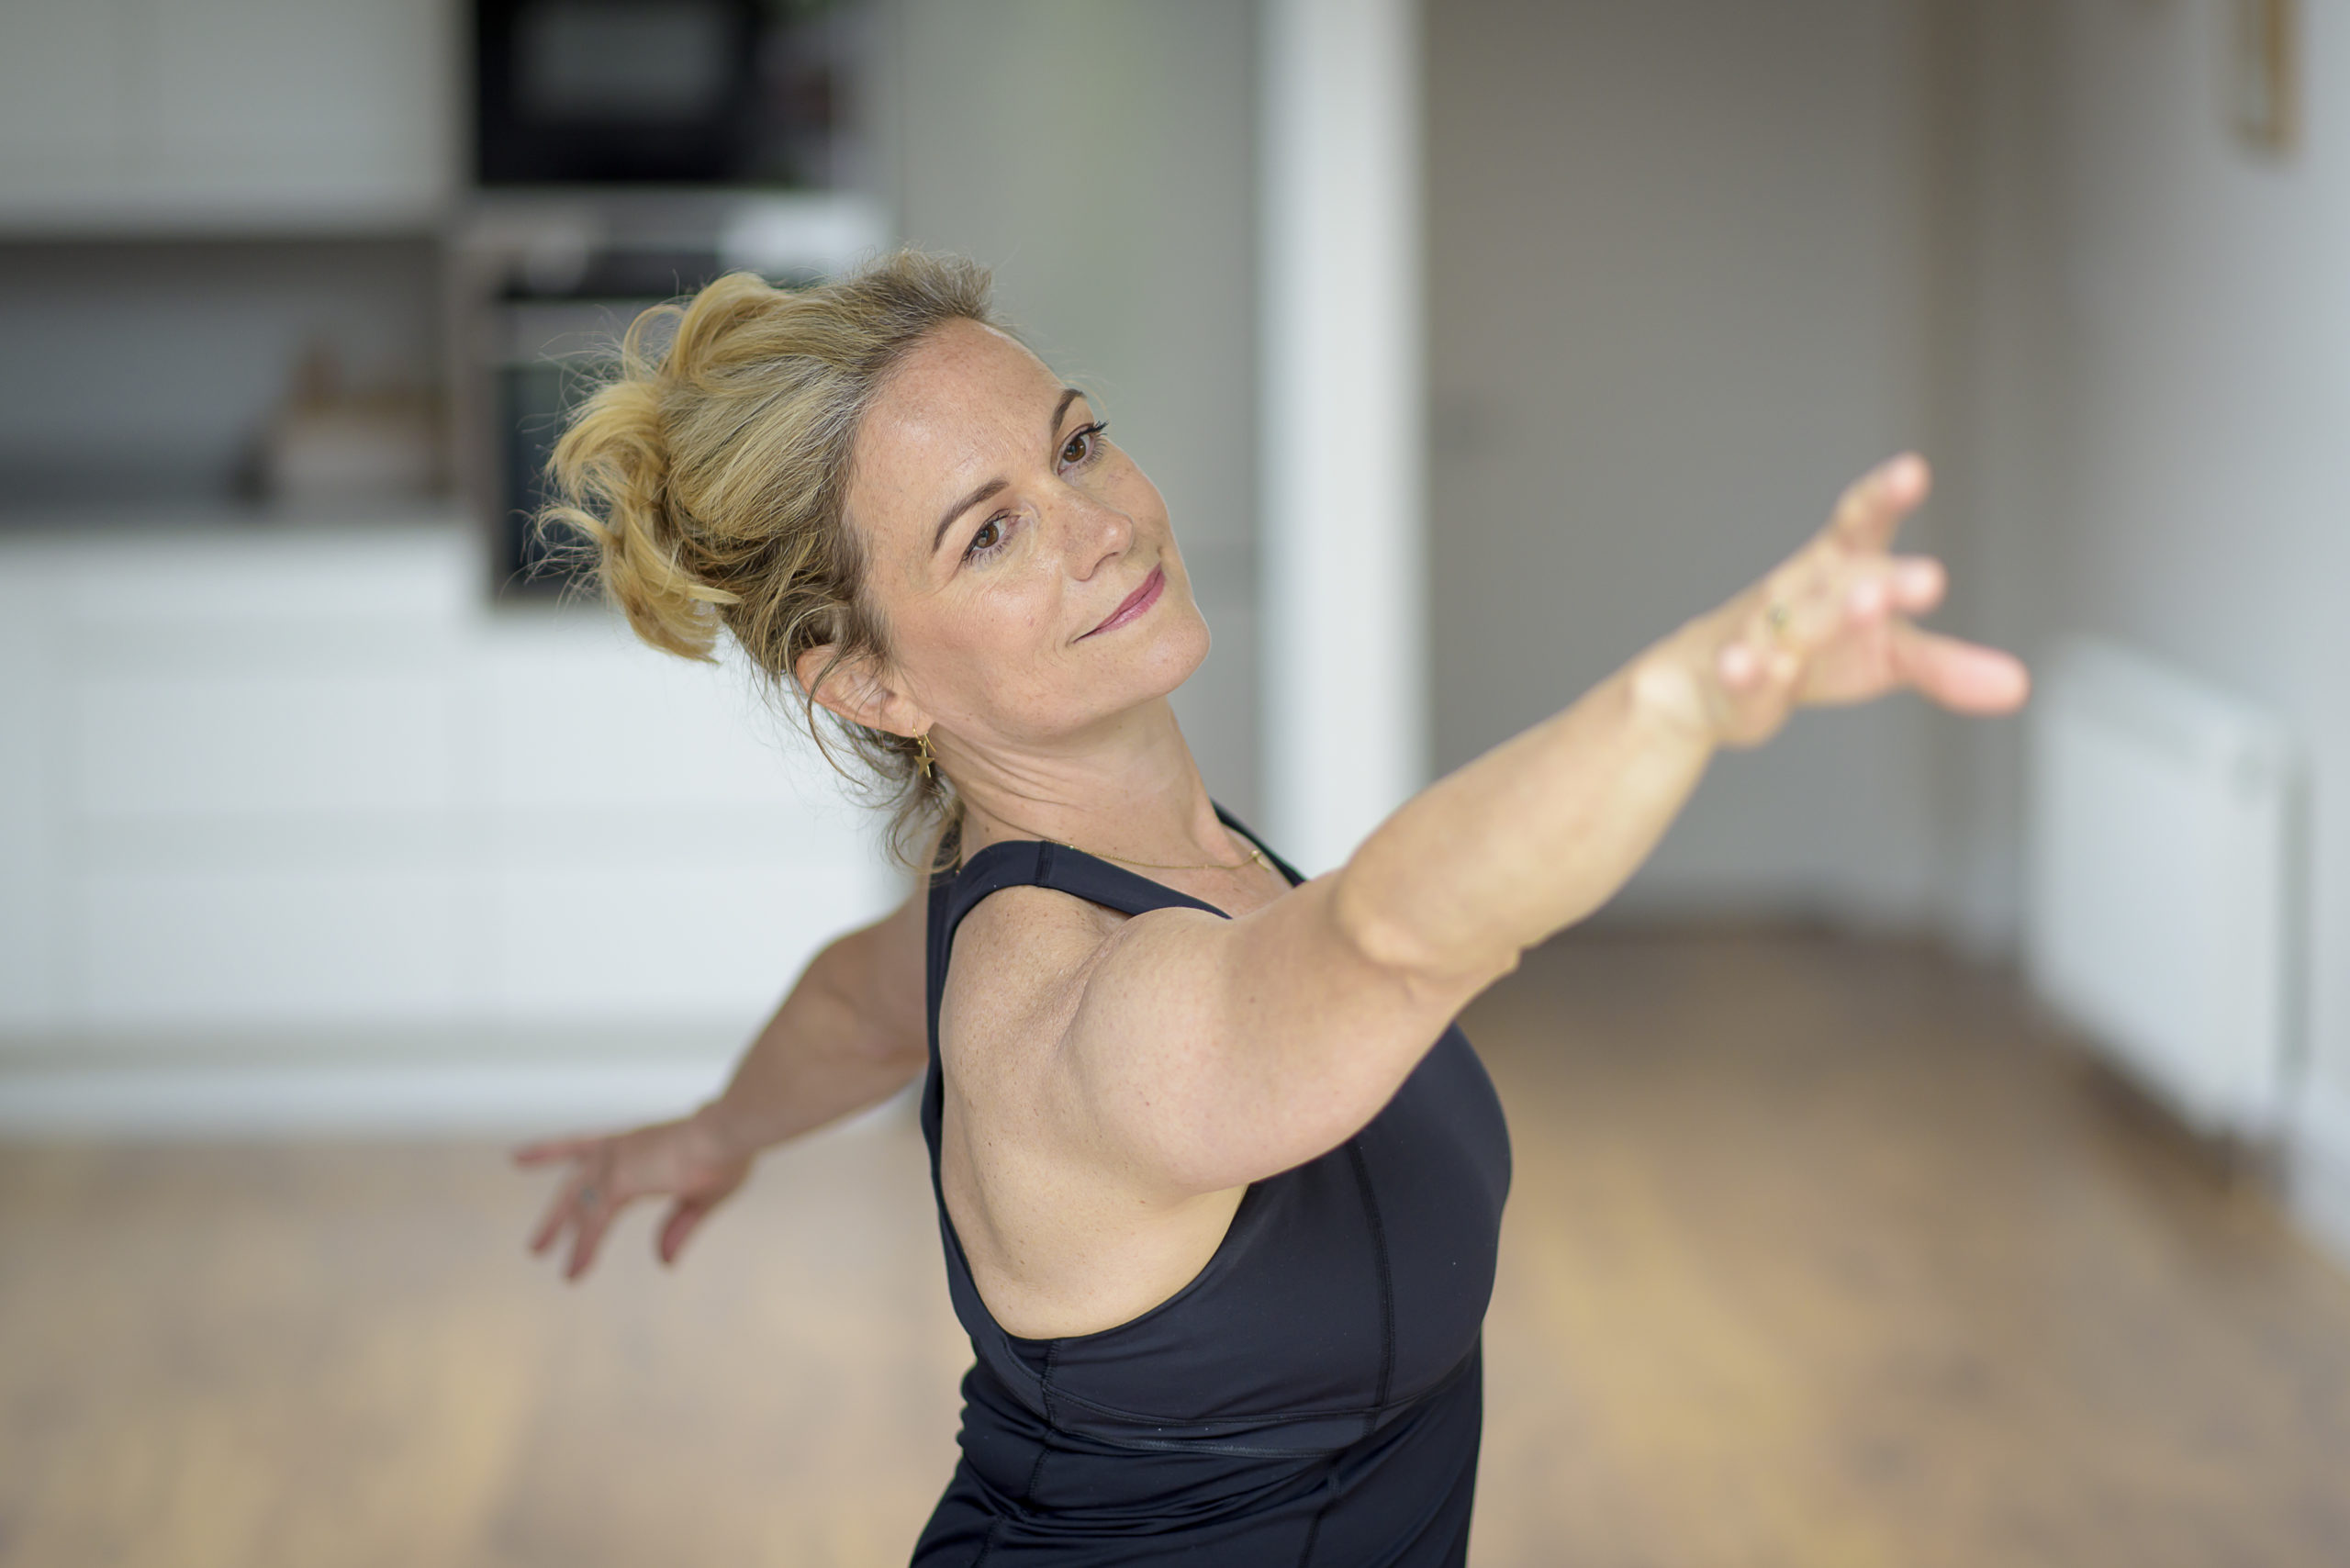 pilates based workouts and real ballet steps